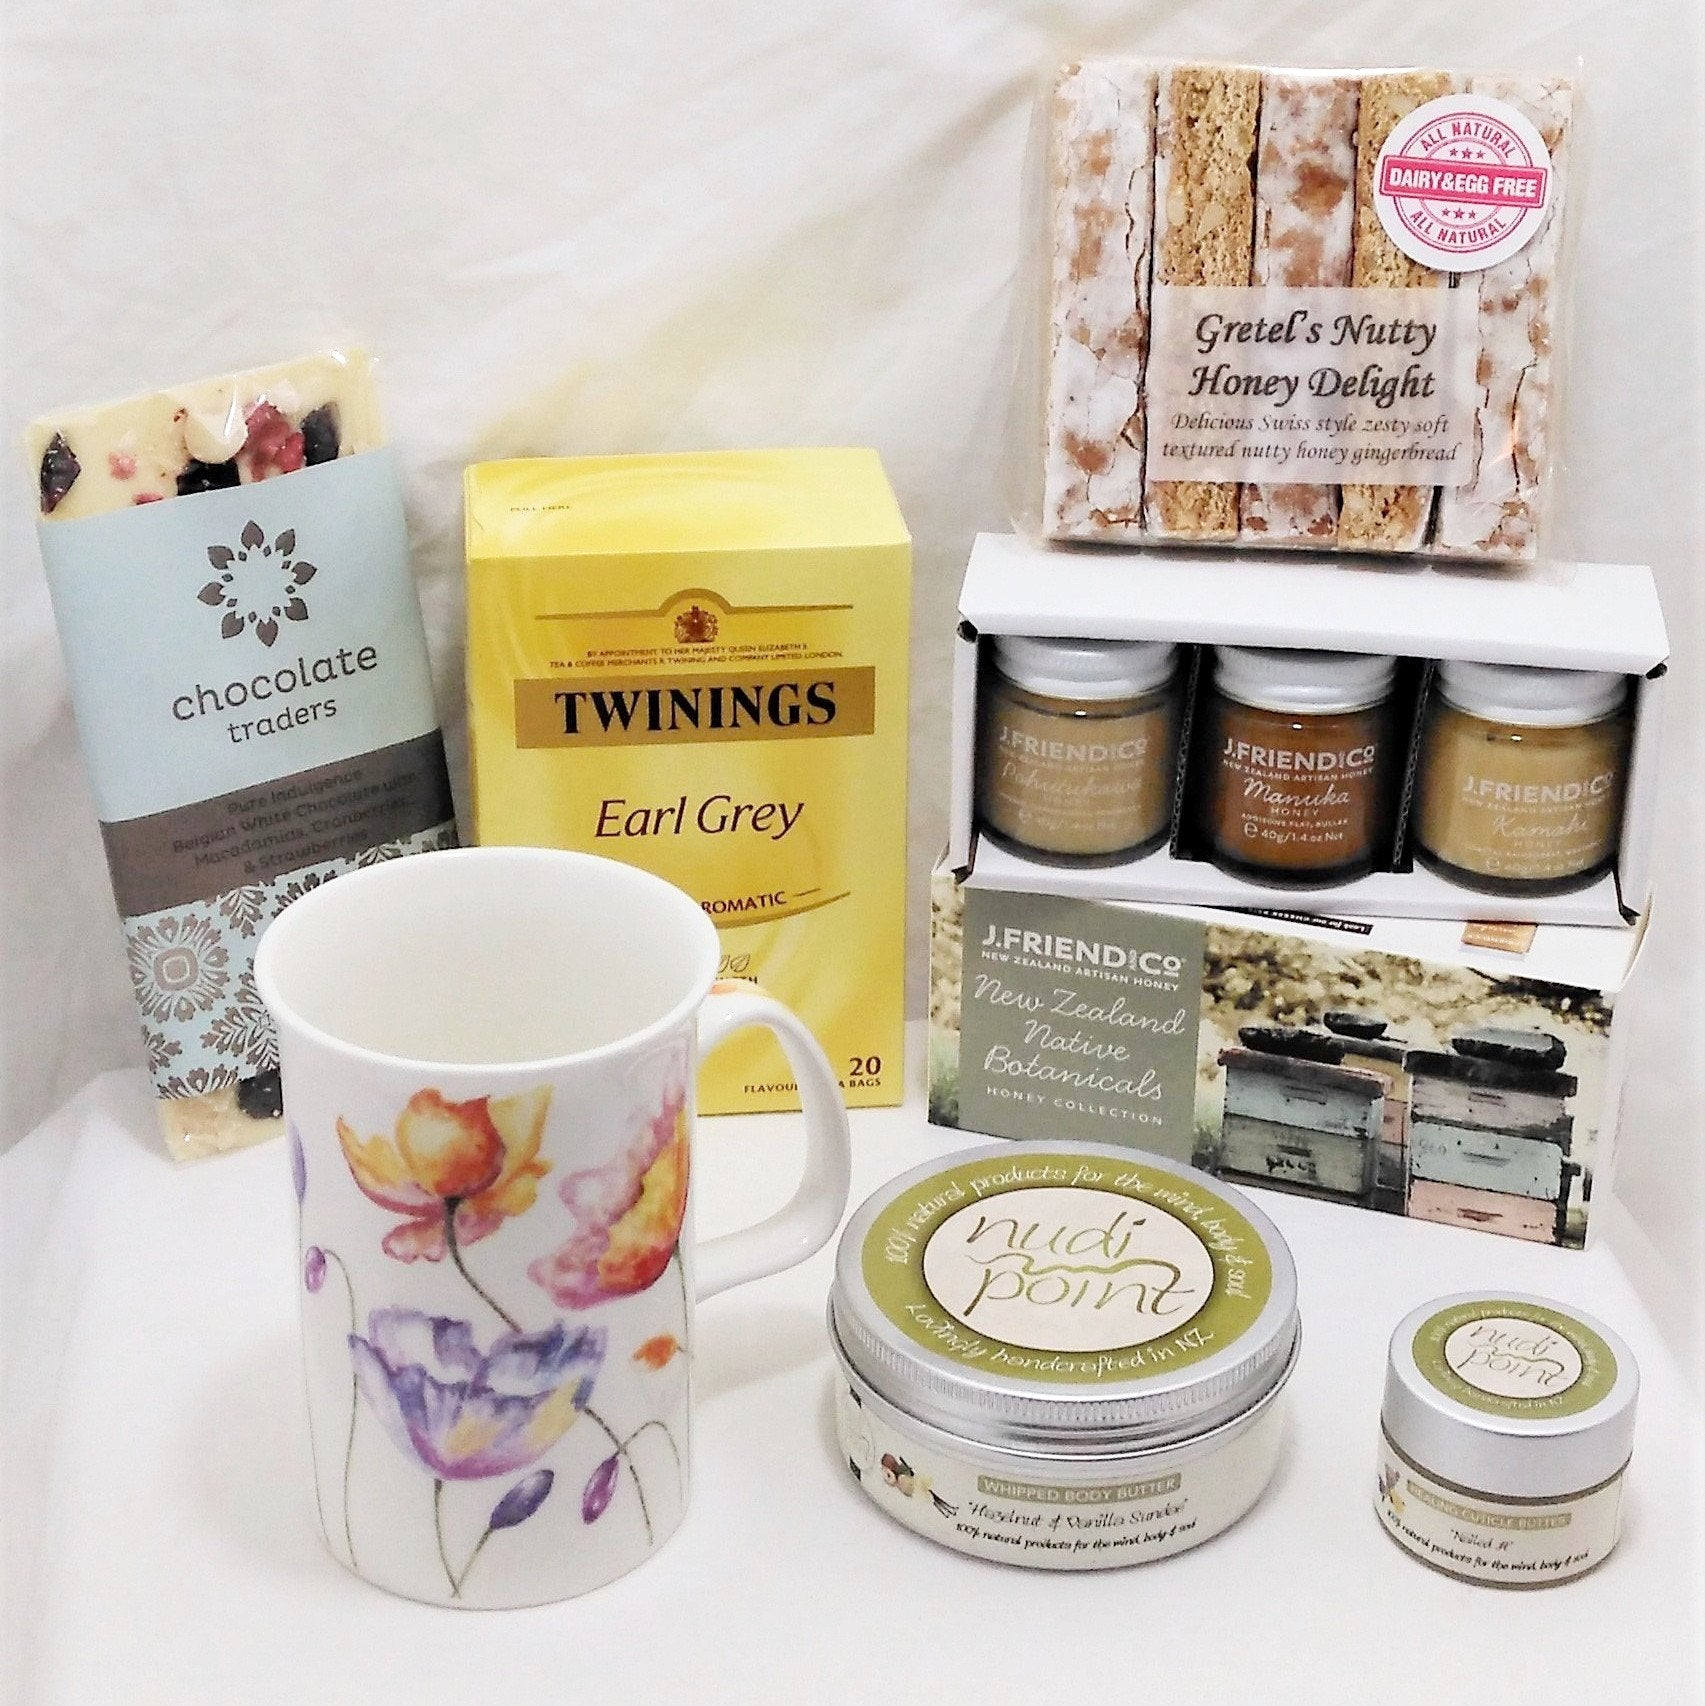 Tea treat gift with lovely tea mug, J Friend & Co botanicals honey set, Earl Grey tea, Nudi Point body butter and nail cuticle butter, gingerbread fingers and delicious chocolate slab